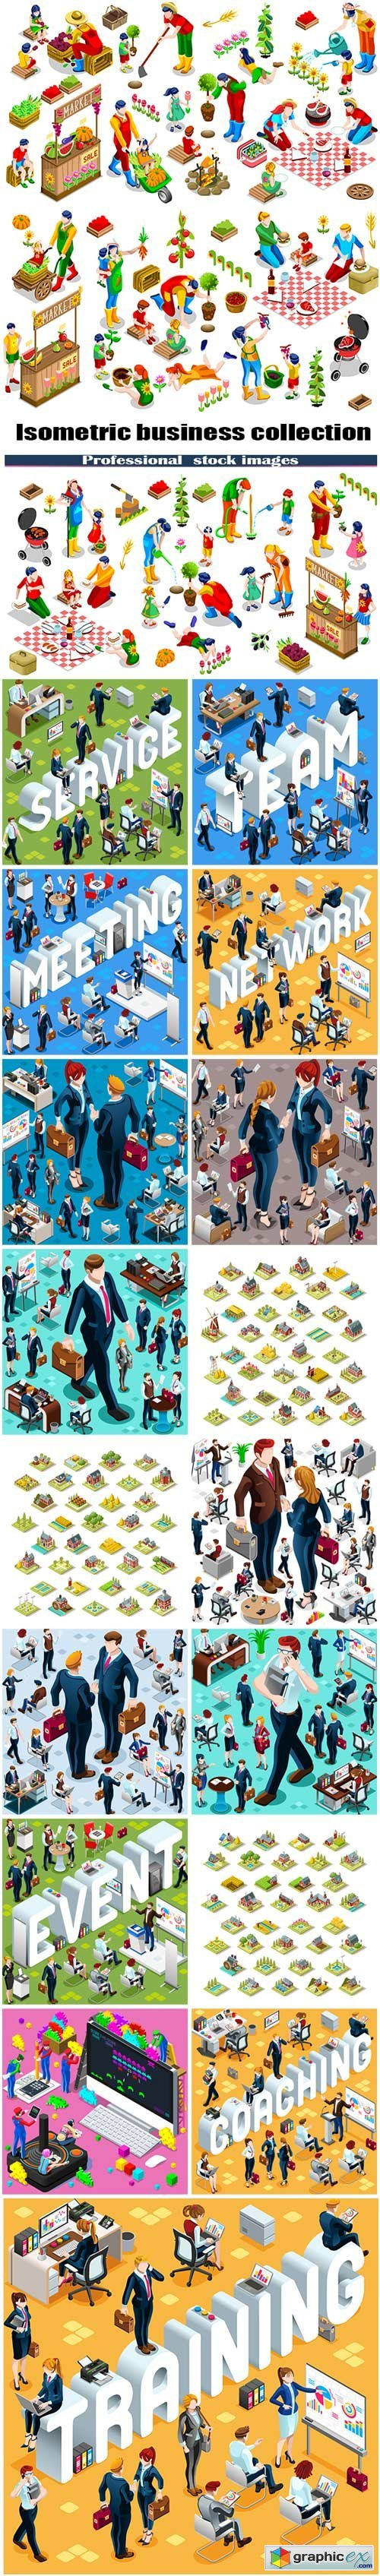 Isometric business collection